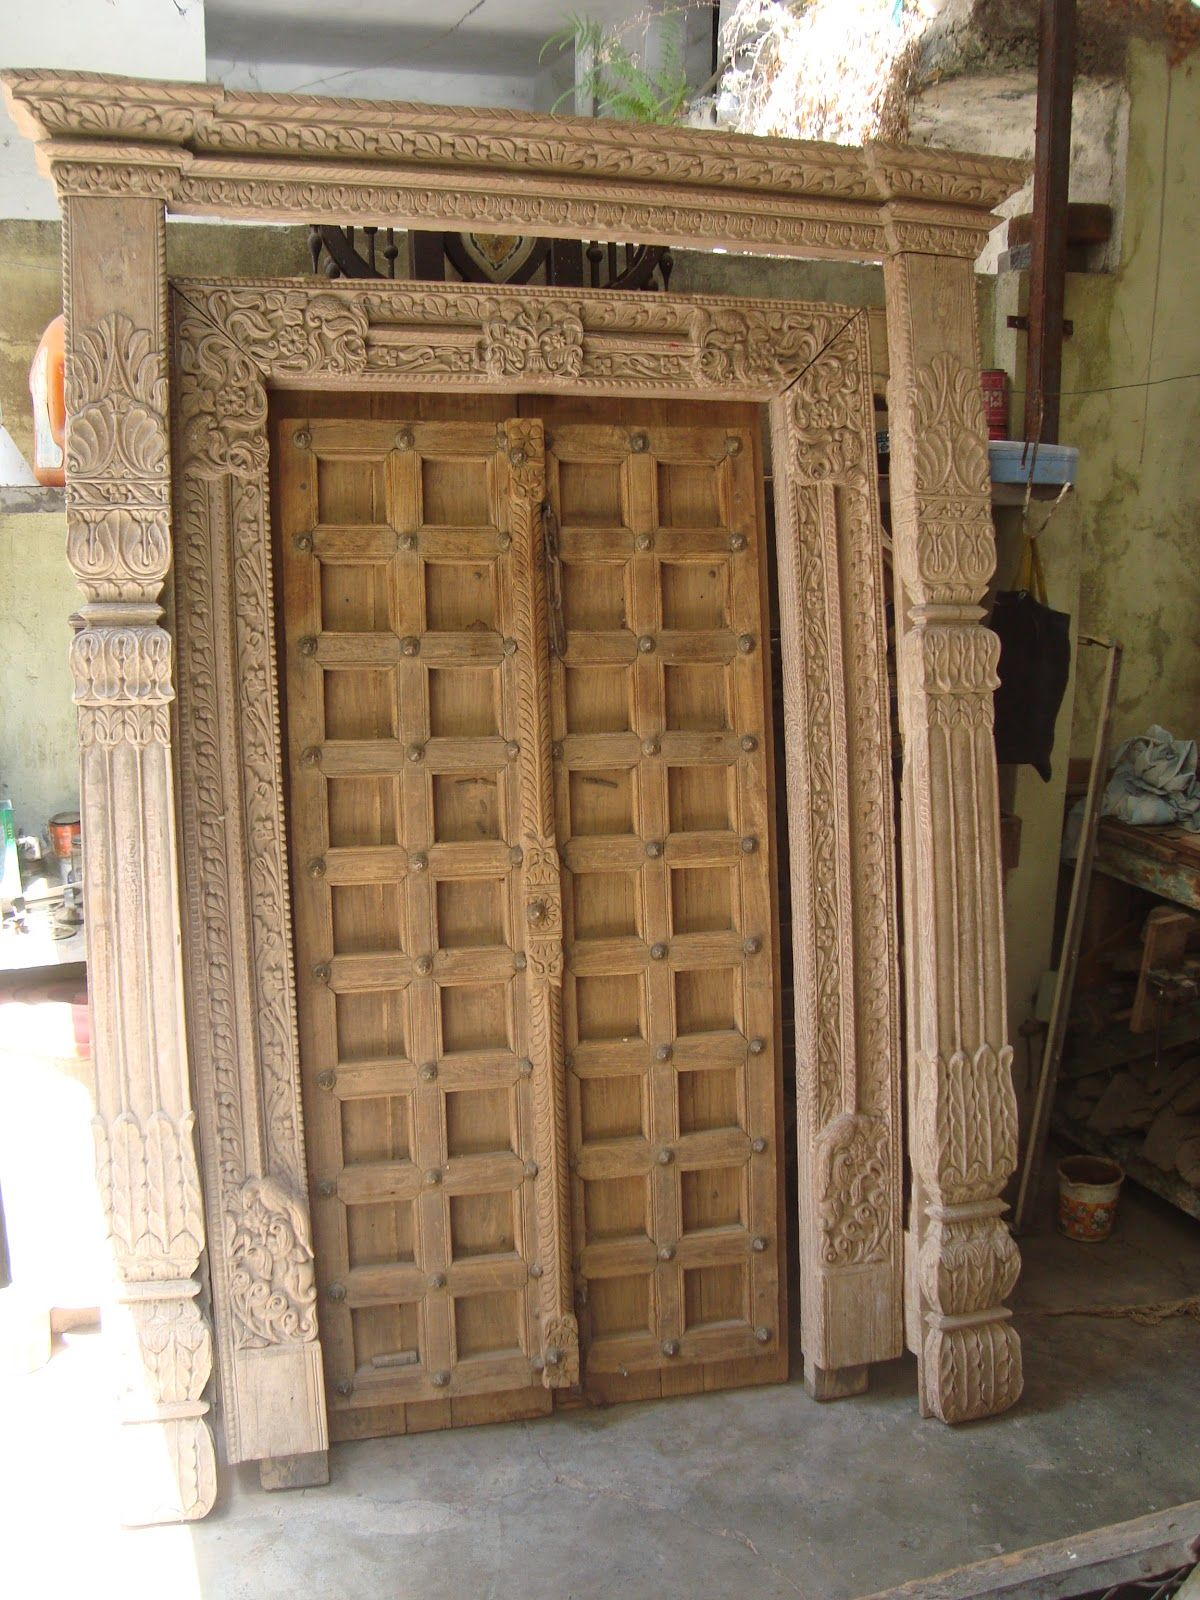 antique door for sale aroun 150 years ancient doors with carving - Antique Door For Sale Aroun 150 Years Ancient Doors With Carving